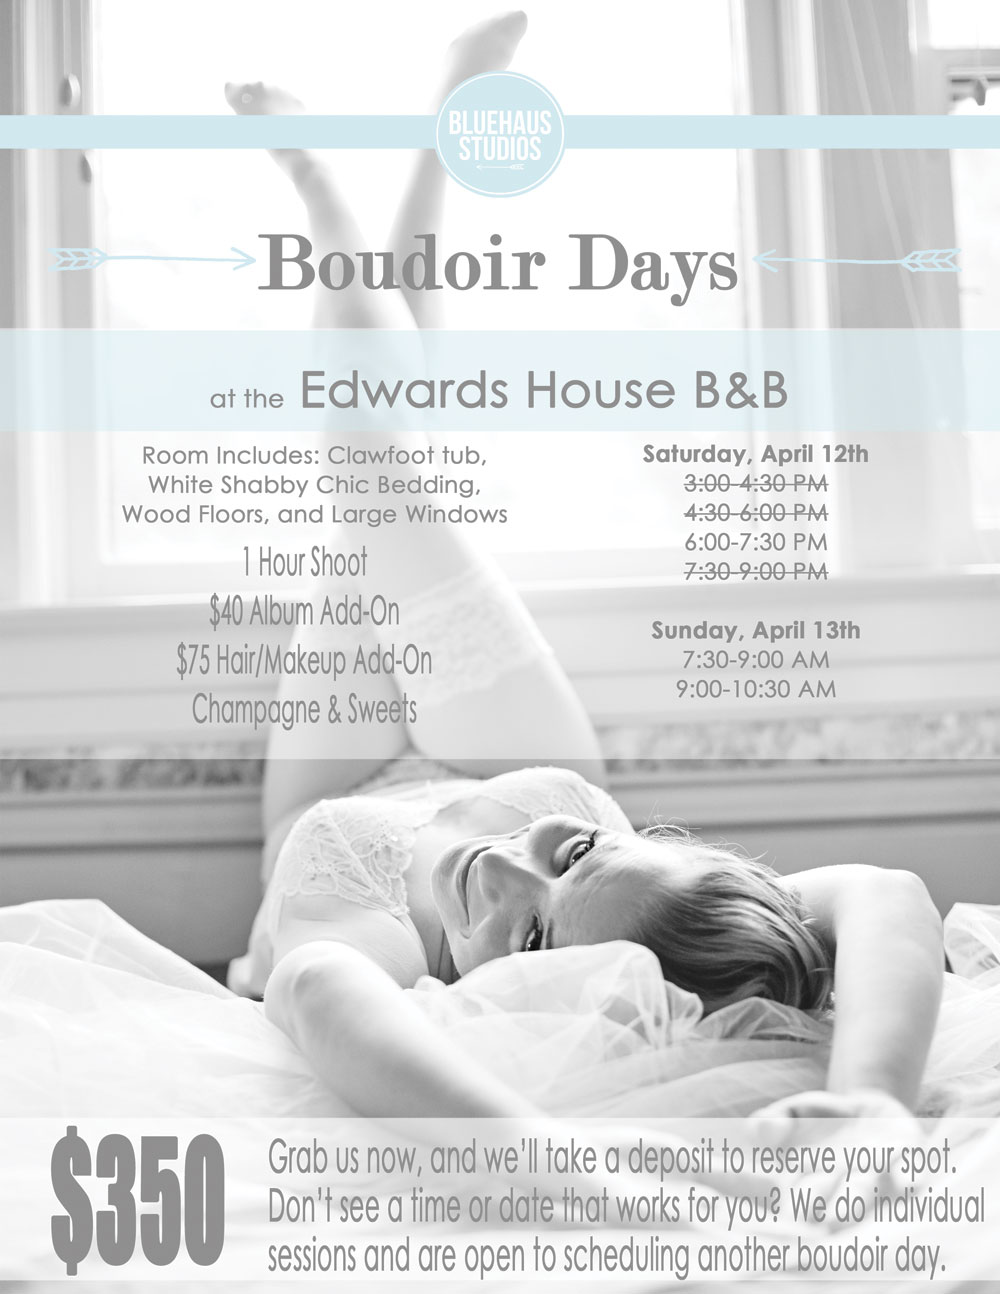 fort collins boudoir photography event | boudoir photographer | bluehaus studios